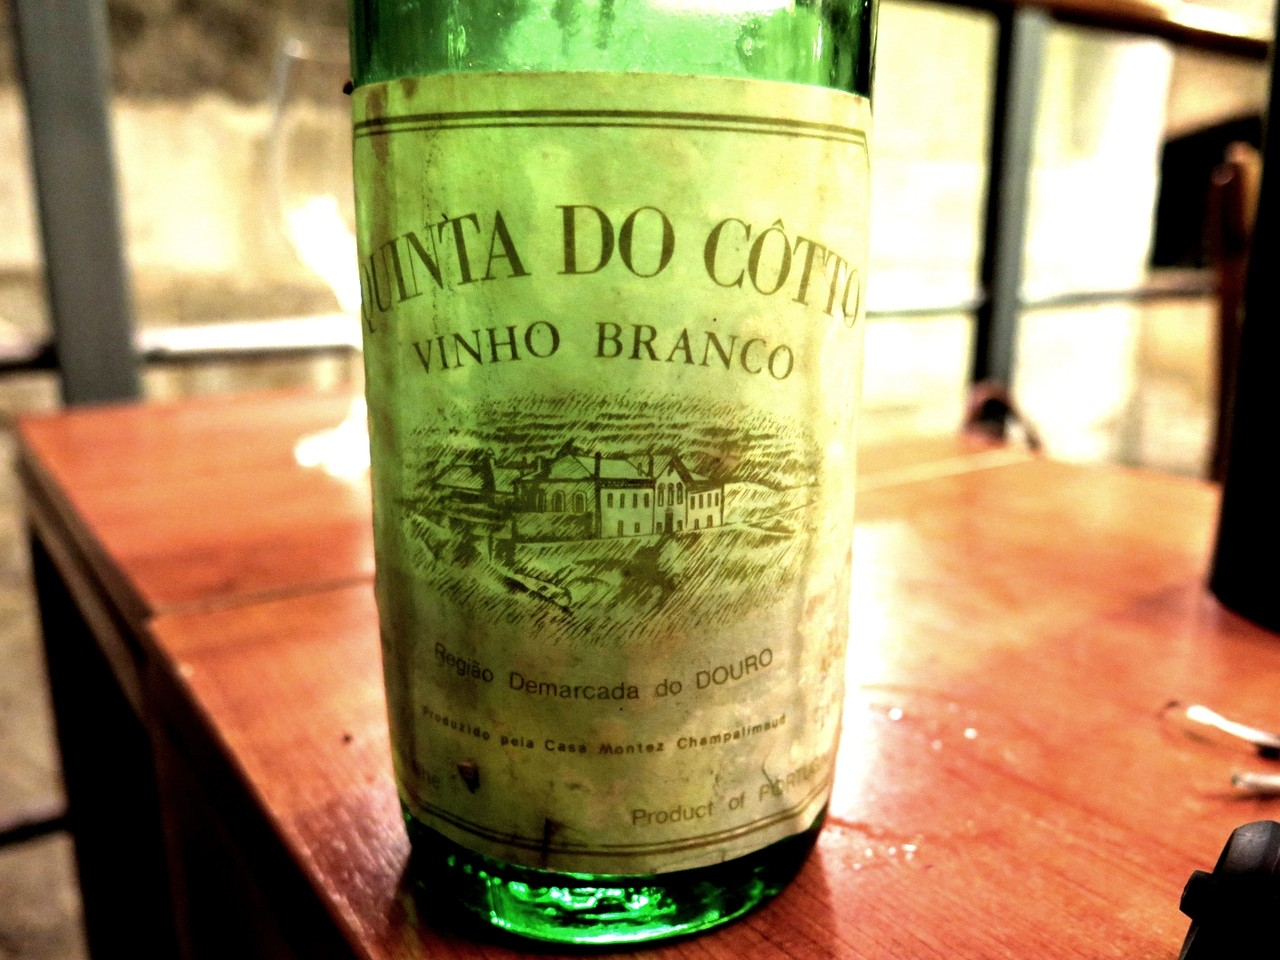 Quinta do Côtto branco 1979